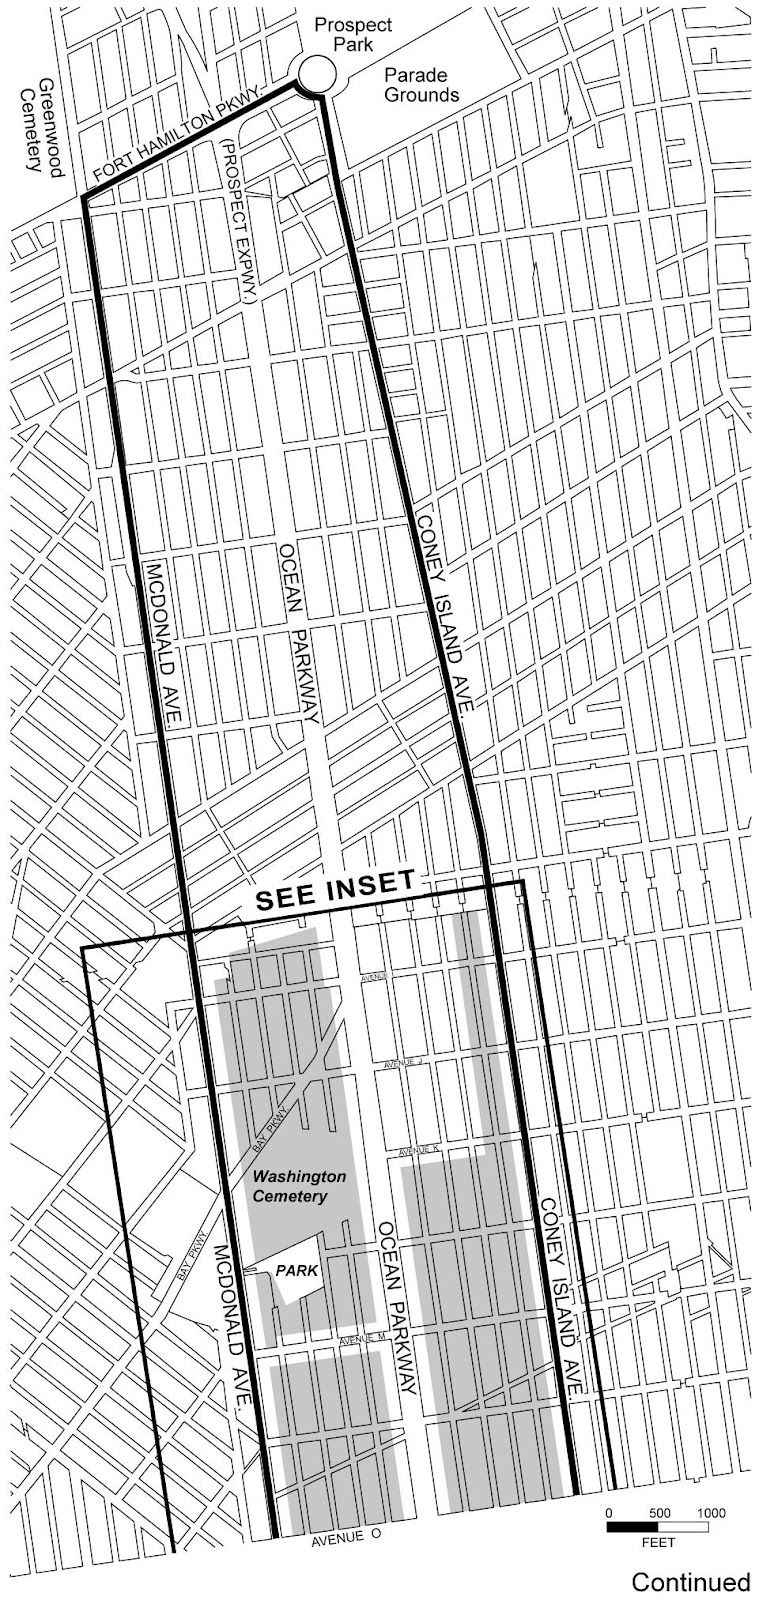 Zoning Resolutions Chapter 3: Special Ocean Parkway District Appendix A.0